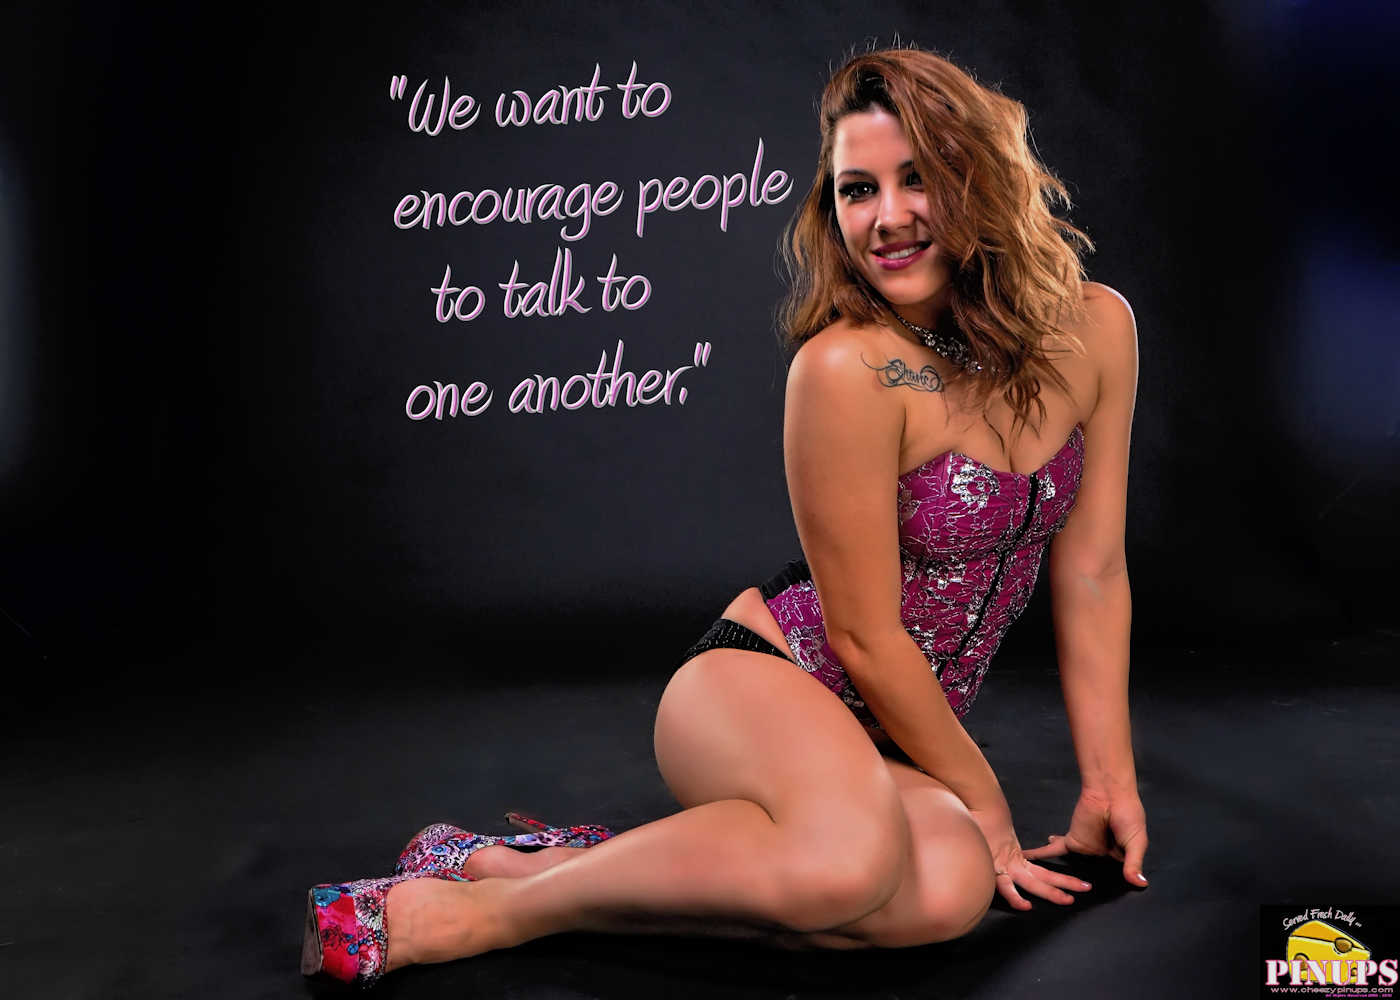 "Cheezy Pinup - January 9, 2017 ""We want to encourage people to talk to one another."" - Kate Middleton Model: Amanda"